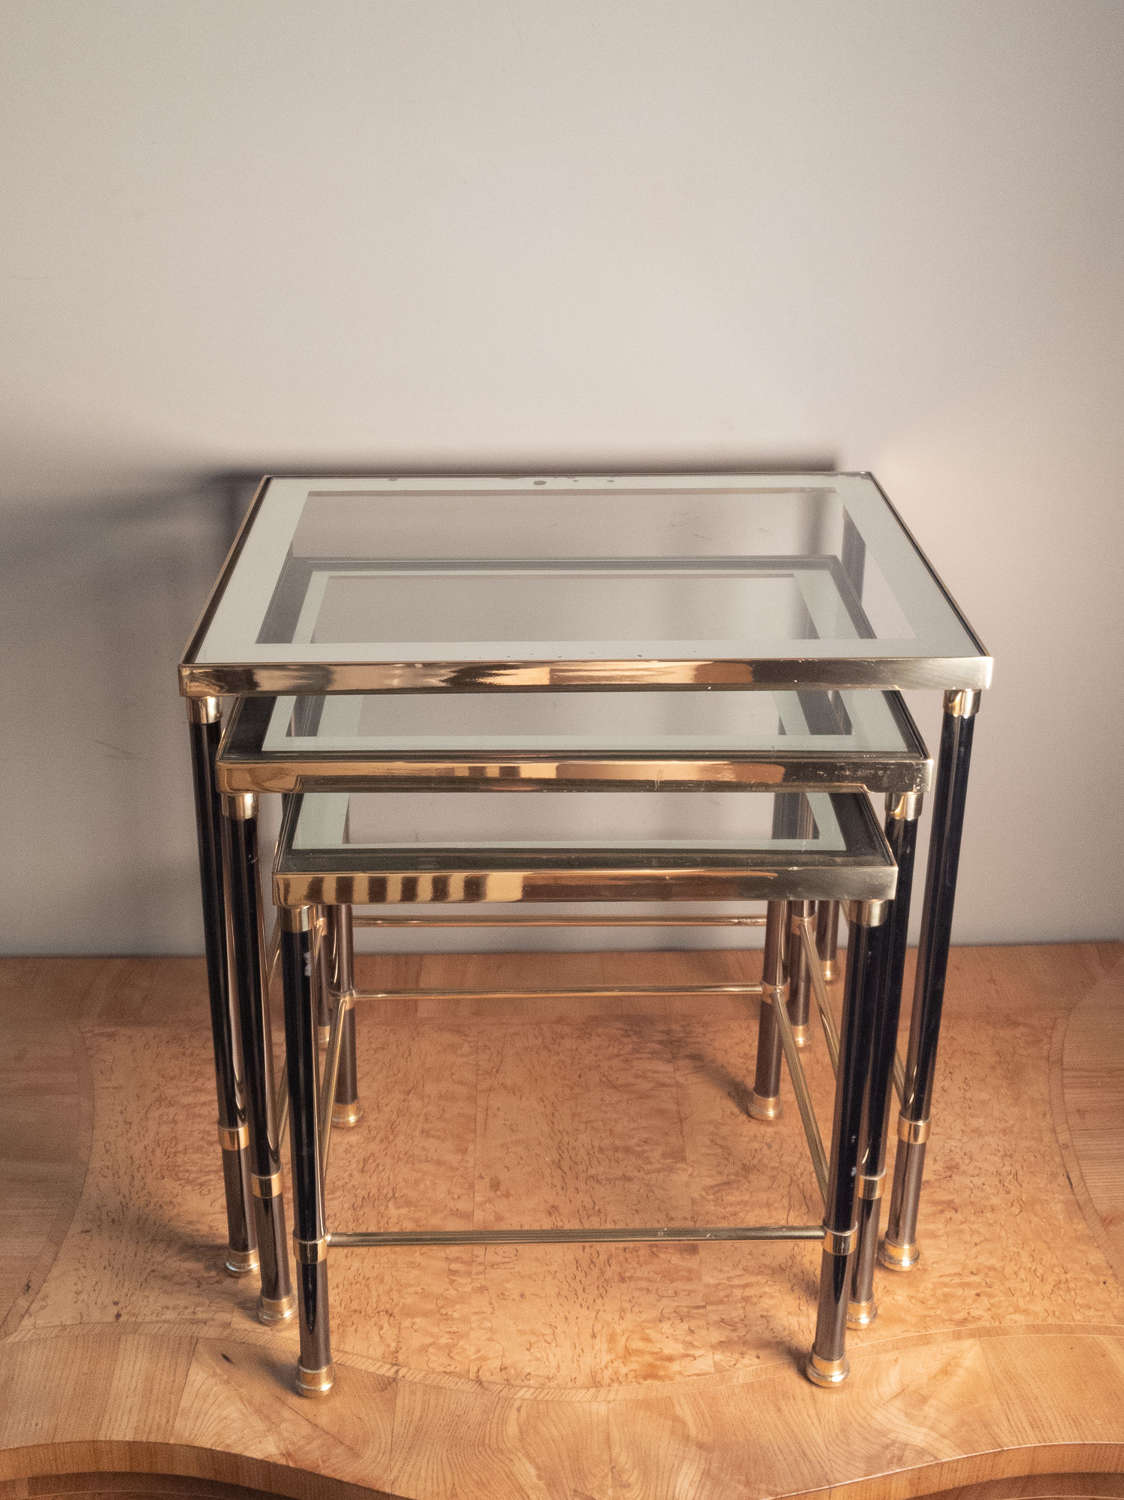 C1970s Nest of 3 occasional tables